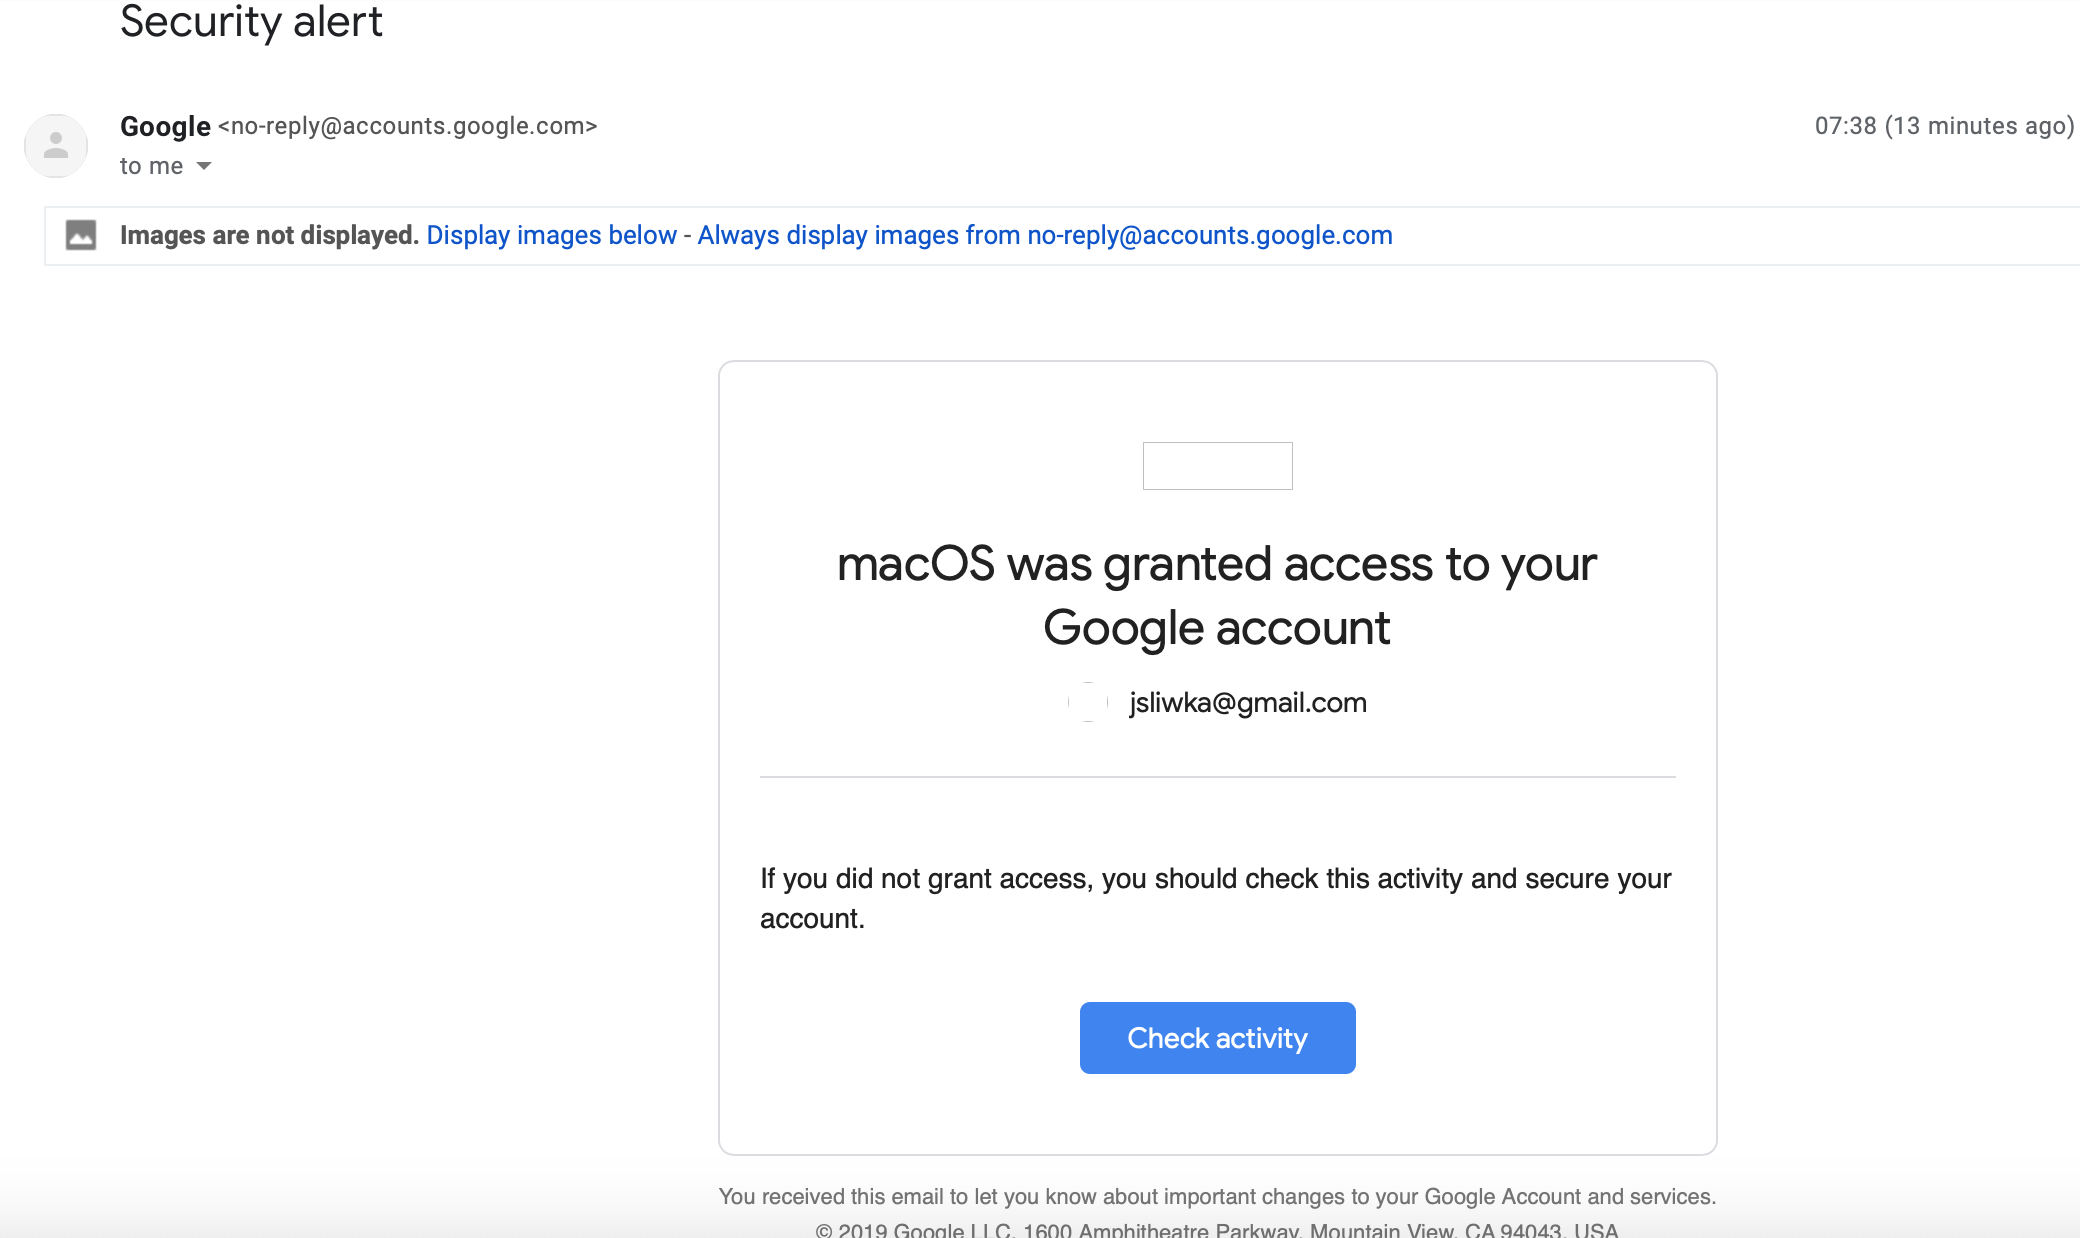 MacOS granted access to my google account - Gmail Help